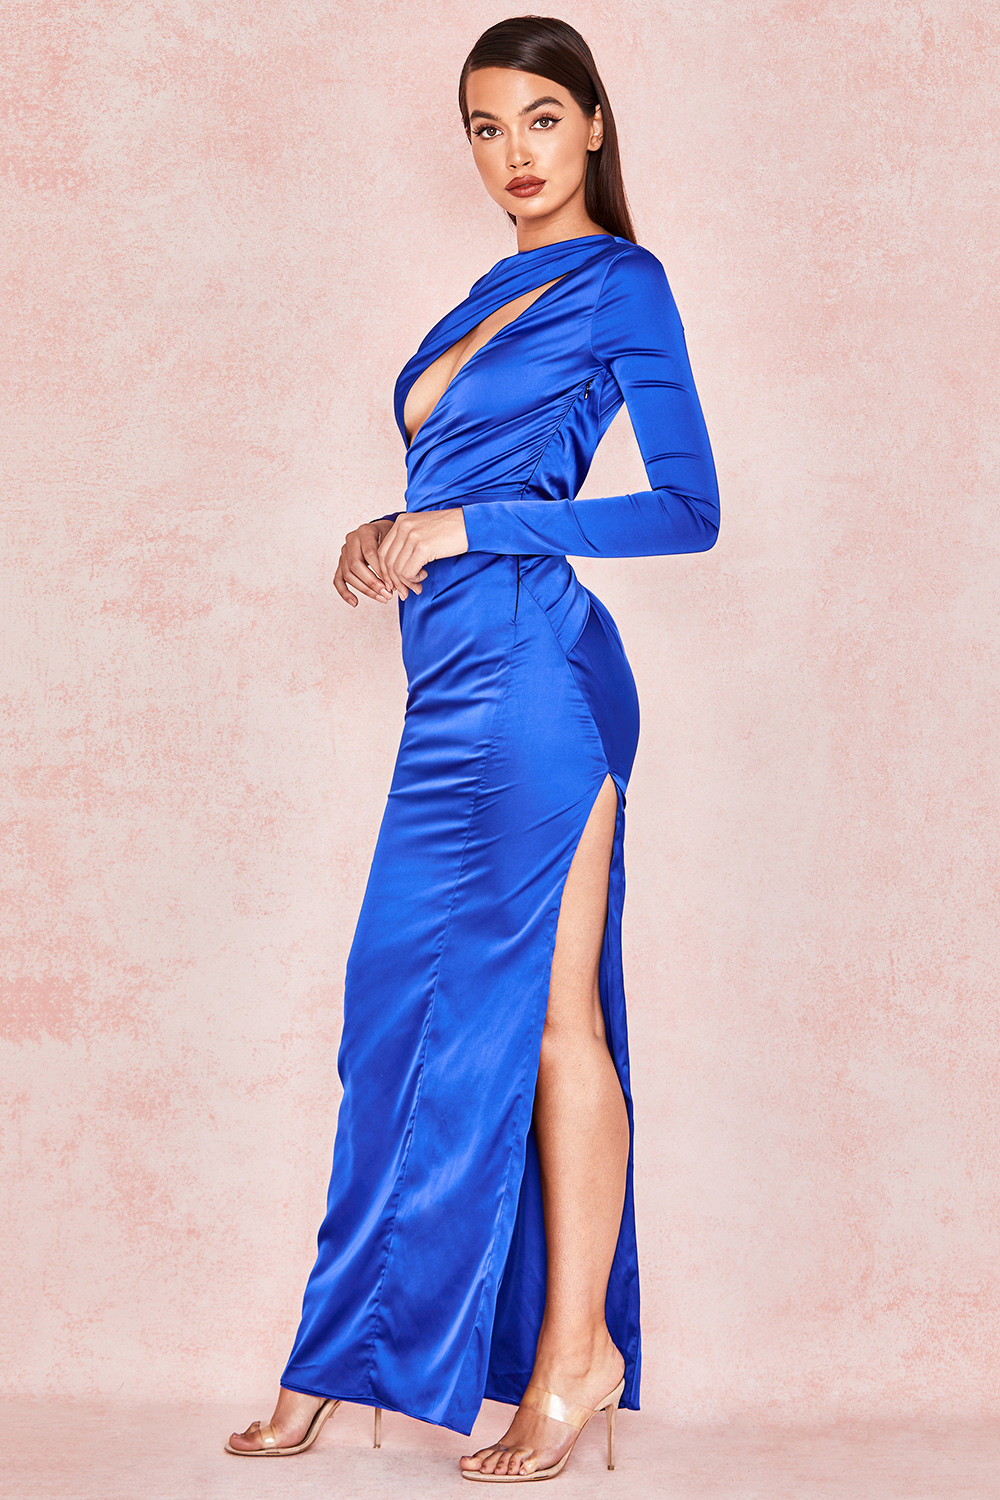 79c5150a1fb Salome Electric Blue Satin Open Front Maxi Dress. View larger image. View  larger image. View larger image. View larger image. View larger image. View  larger ...